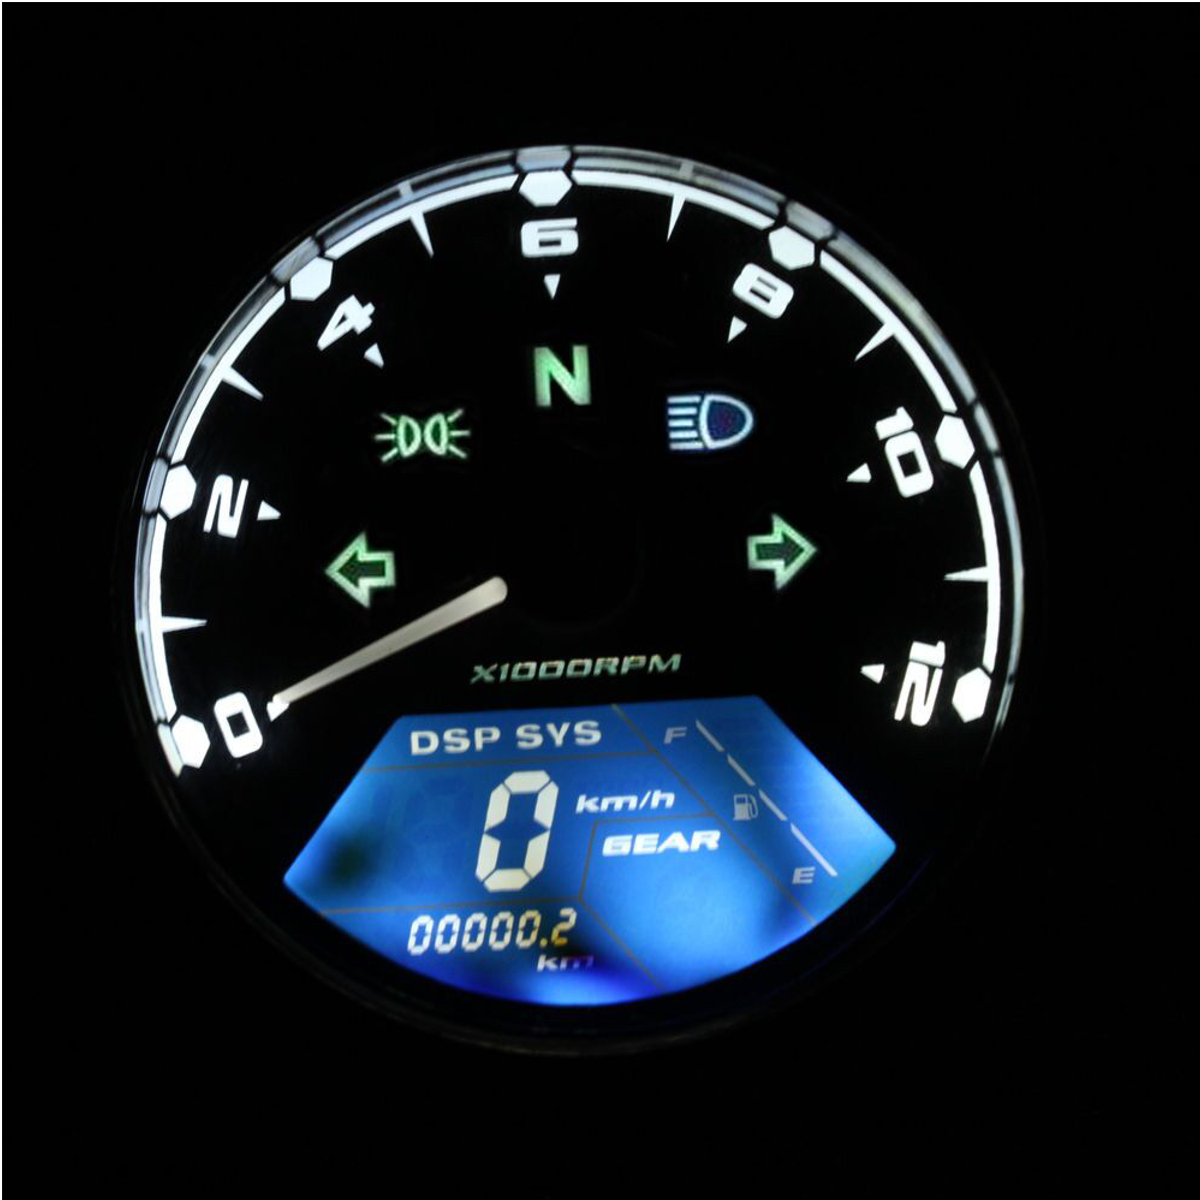 Lcd Digital Tire Pressure Gauge 2 150psi together with Samsung St76 Kamera 16 Mp in addition 131524743633 furthermore Rgb Negatief 16x2 Lcd Plus Keypad Shield Kit Voor Arduino moreover Yamaha Mm6 Synthetiseur Nomade 61 Touches. on lcd 16 4 backlight blue